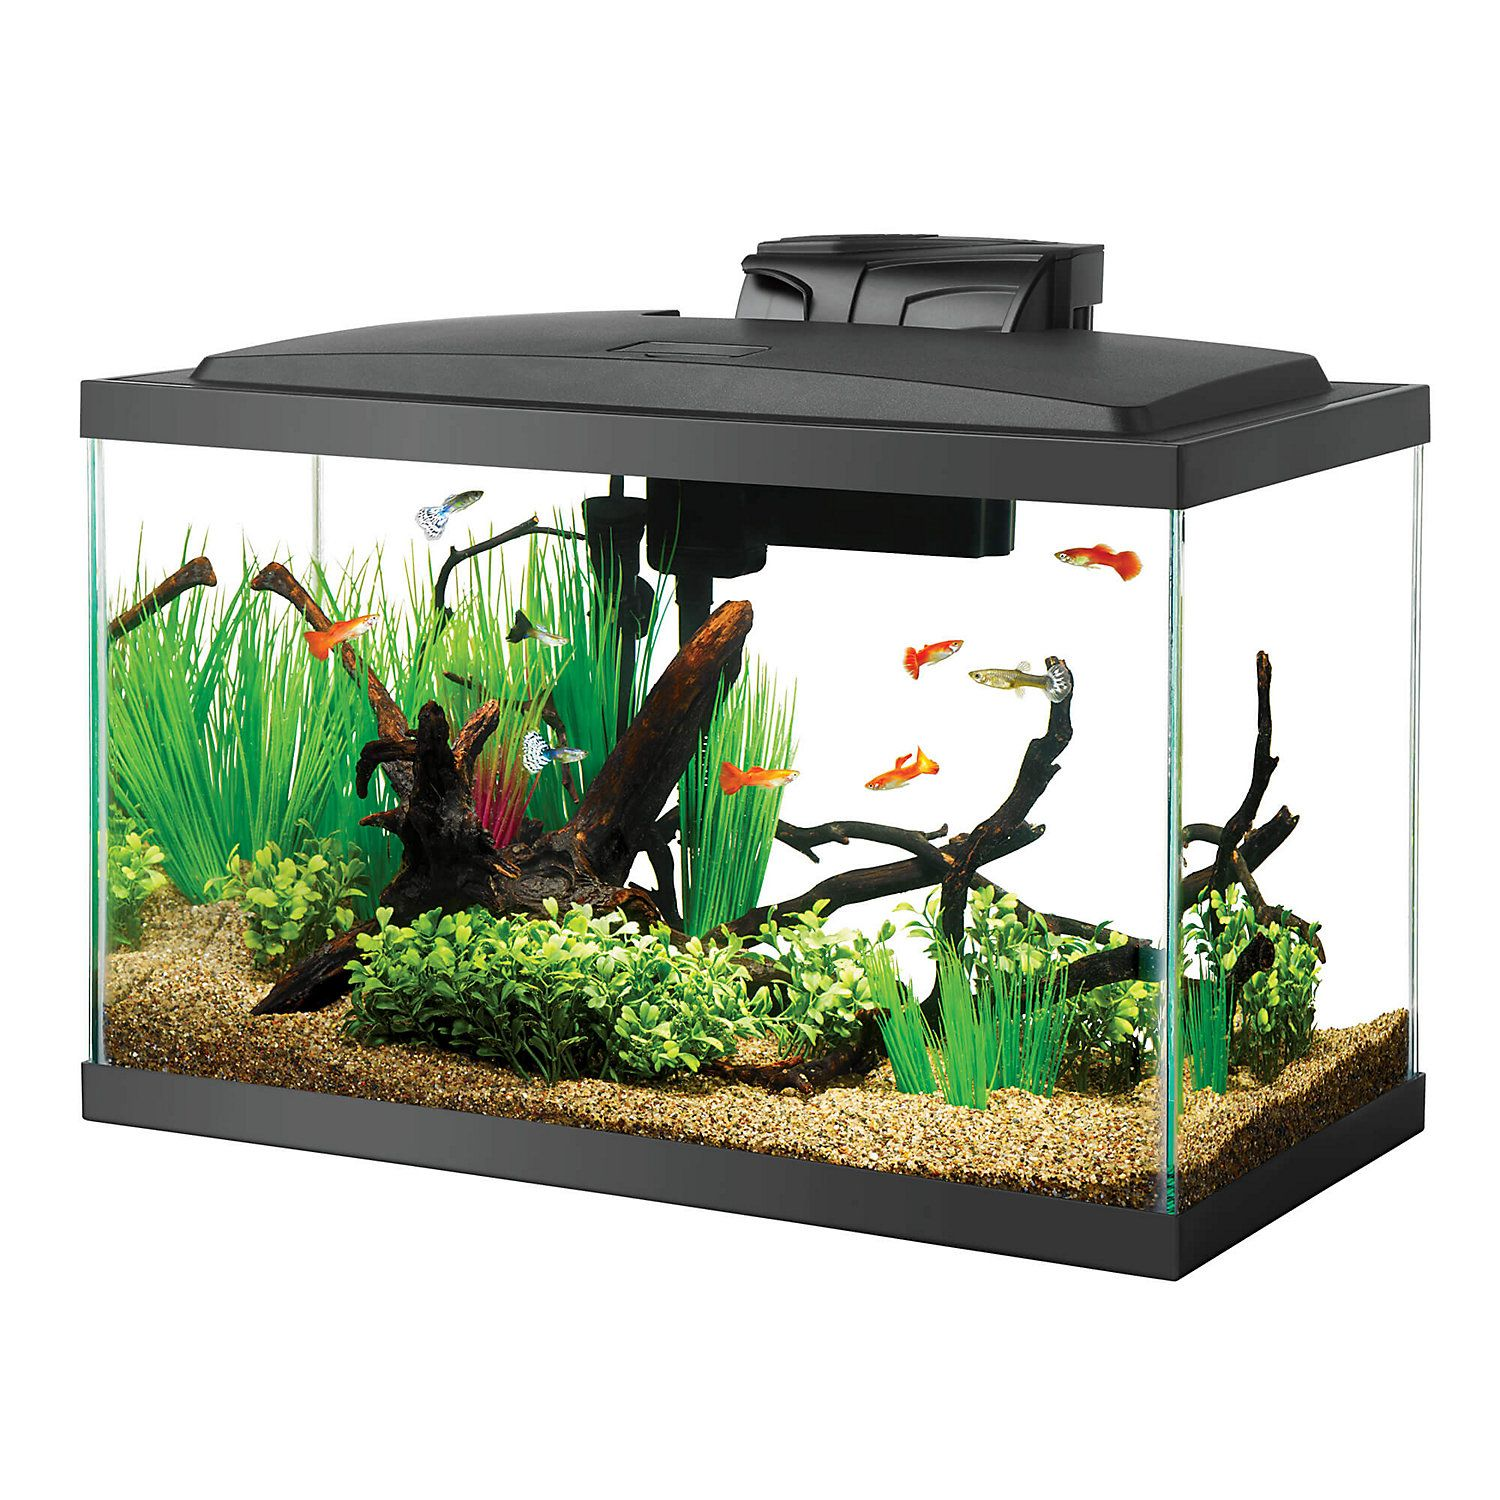 Aqueon 10 Gal Led Aquarium Kit 10 Gallon Fish Tank Aquarium Fish Tank Aquarium Fish